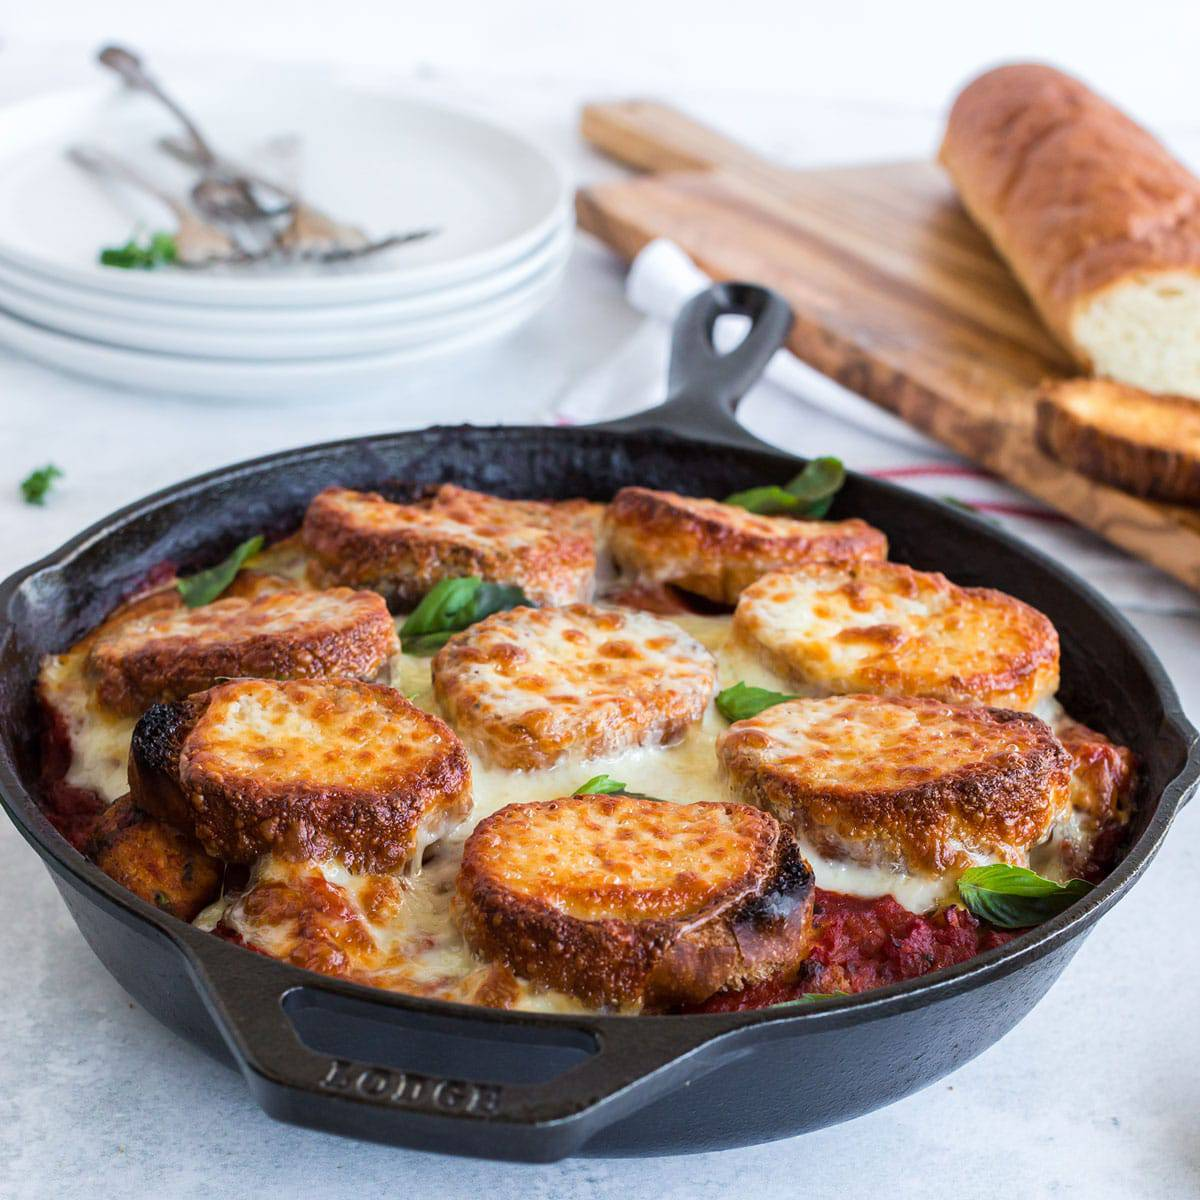 Skillet with sliced baguettes and melted cheese in red sauce.